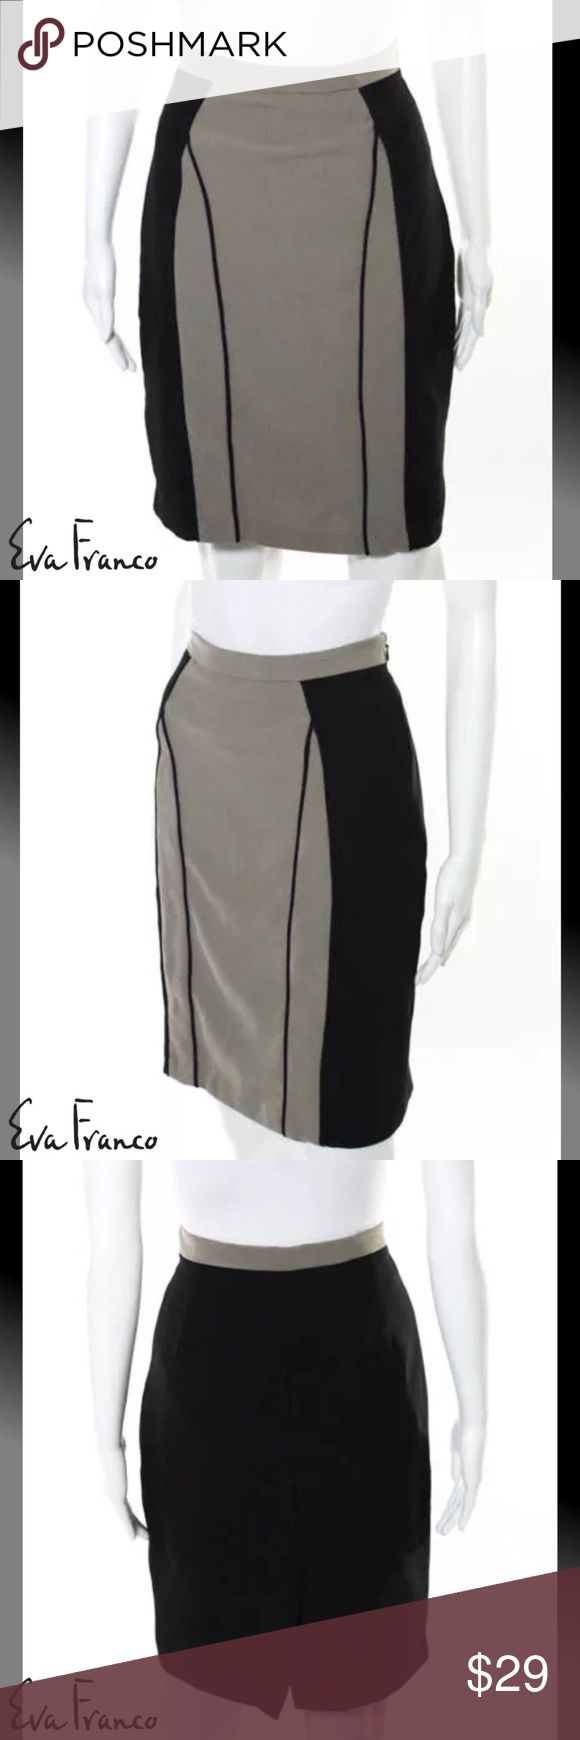 """EVA FRANCO (ANTHRO) Classy Blk/Gray Pencil Skirt SIZE 4. 21.5"""" Length. 26"""" Waist. Black & Gray Colors. Color locked Design. Pencil Style. Back Slit. Back Zipper & Eye Closure. Fully Lined. Dry Clean. 92% Polyester/8% Spandex Blend. Perfect Condition. WORN ONCE Anthropologie Skirts Pencil"""